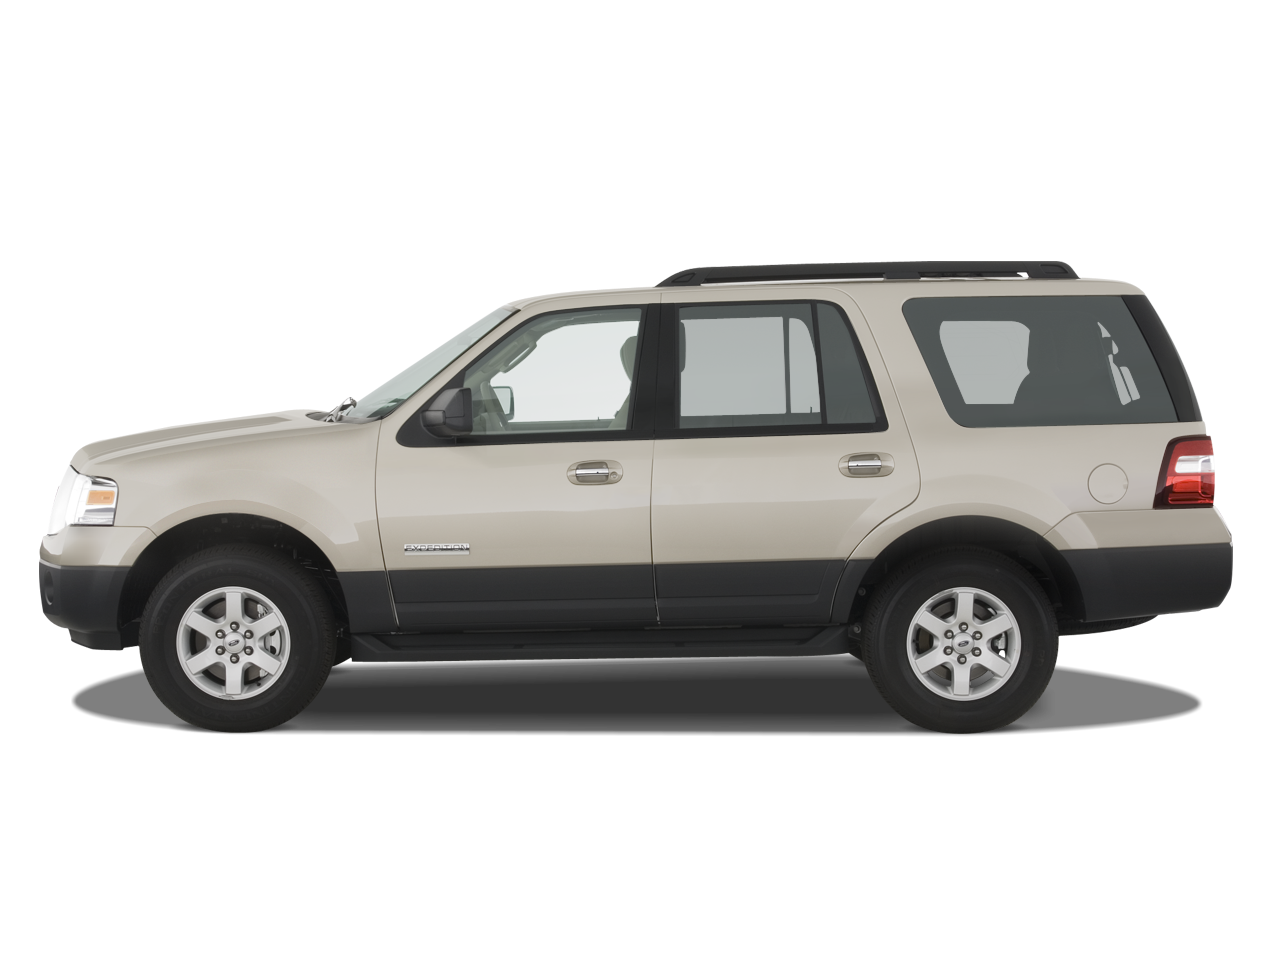 2009 Ford Expedition Exp Limited El 4x4 Ford Fullsize Suv Review Automobile Magazine